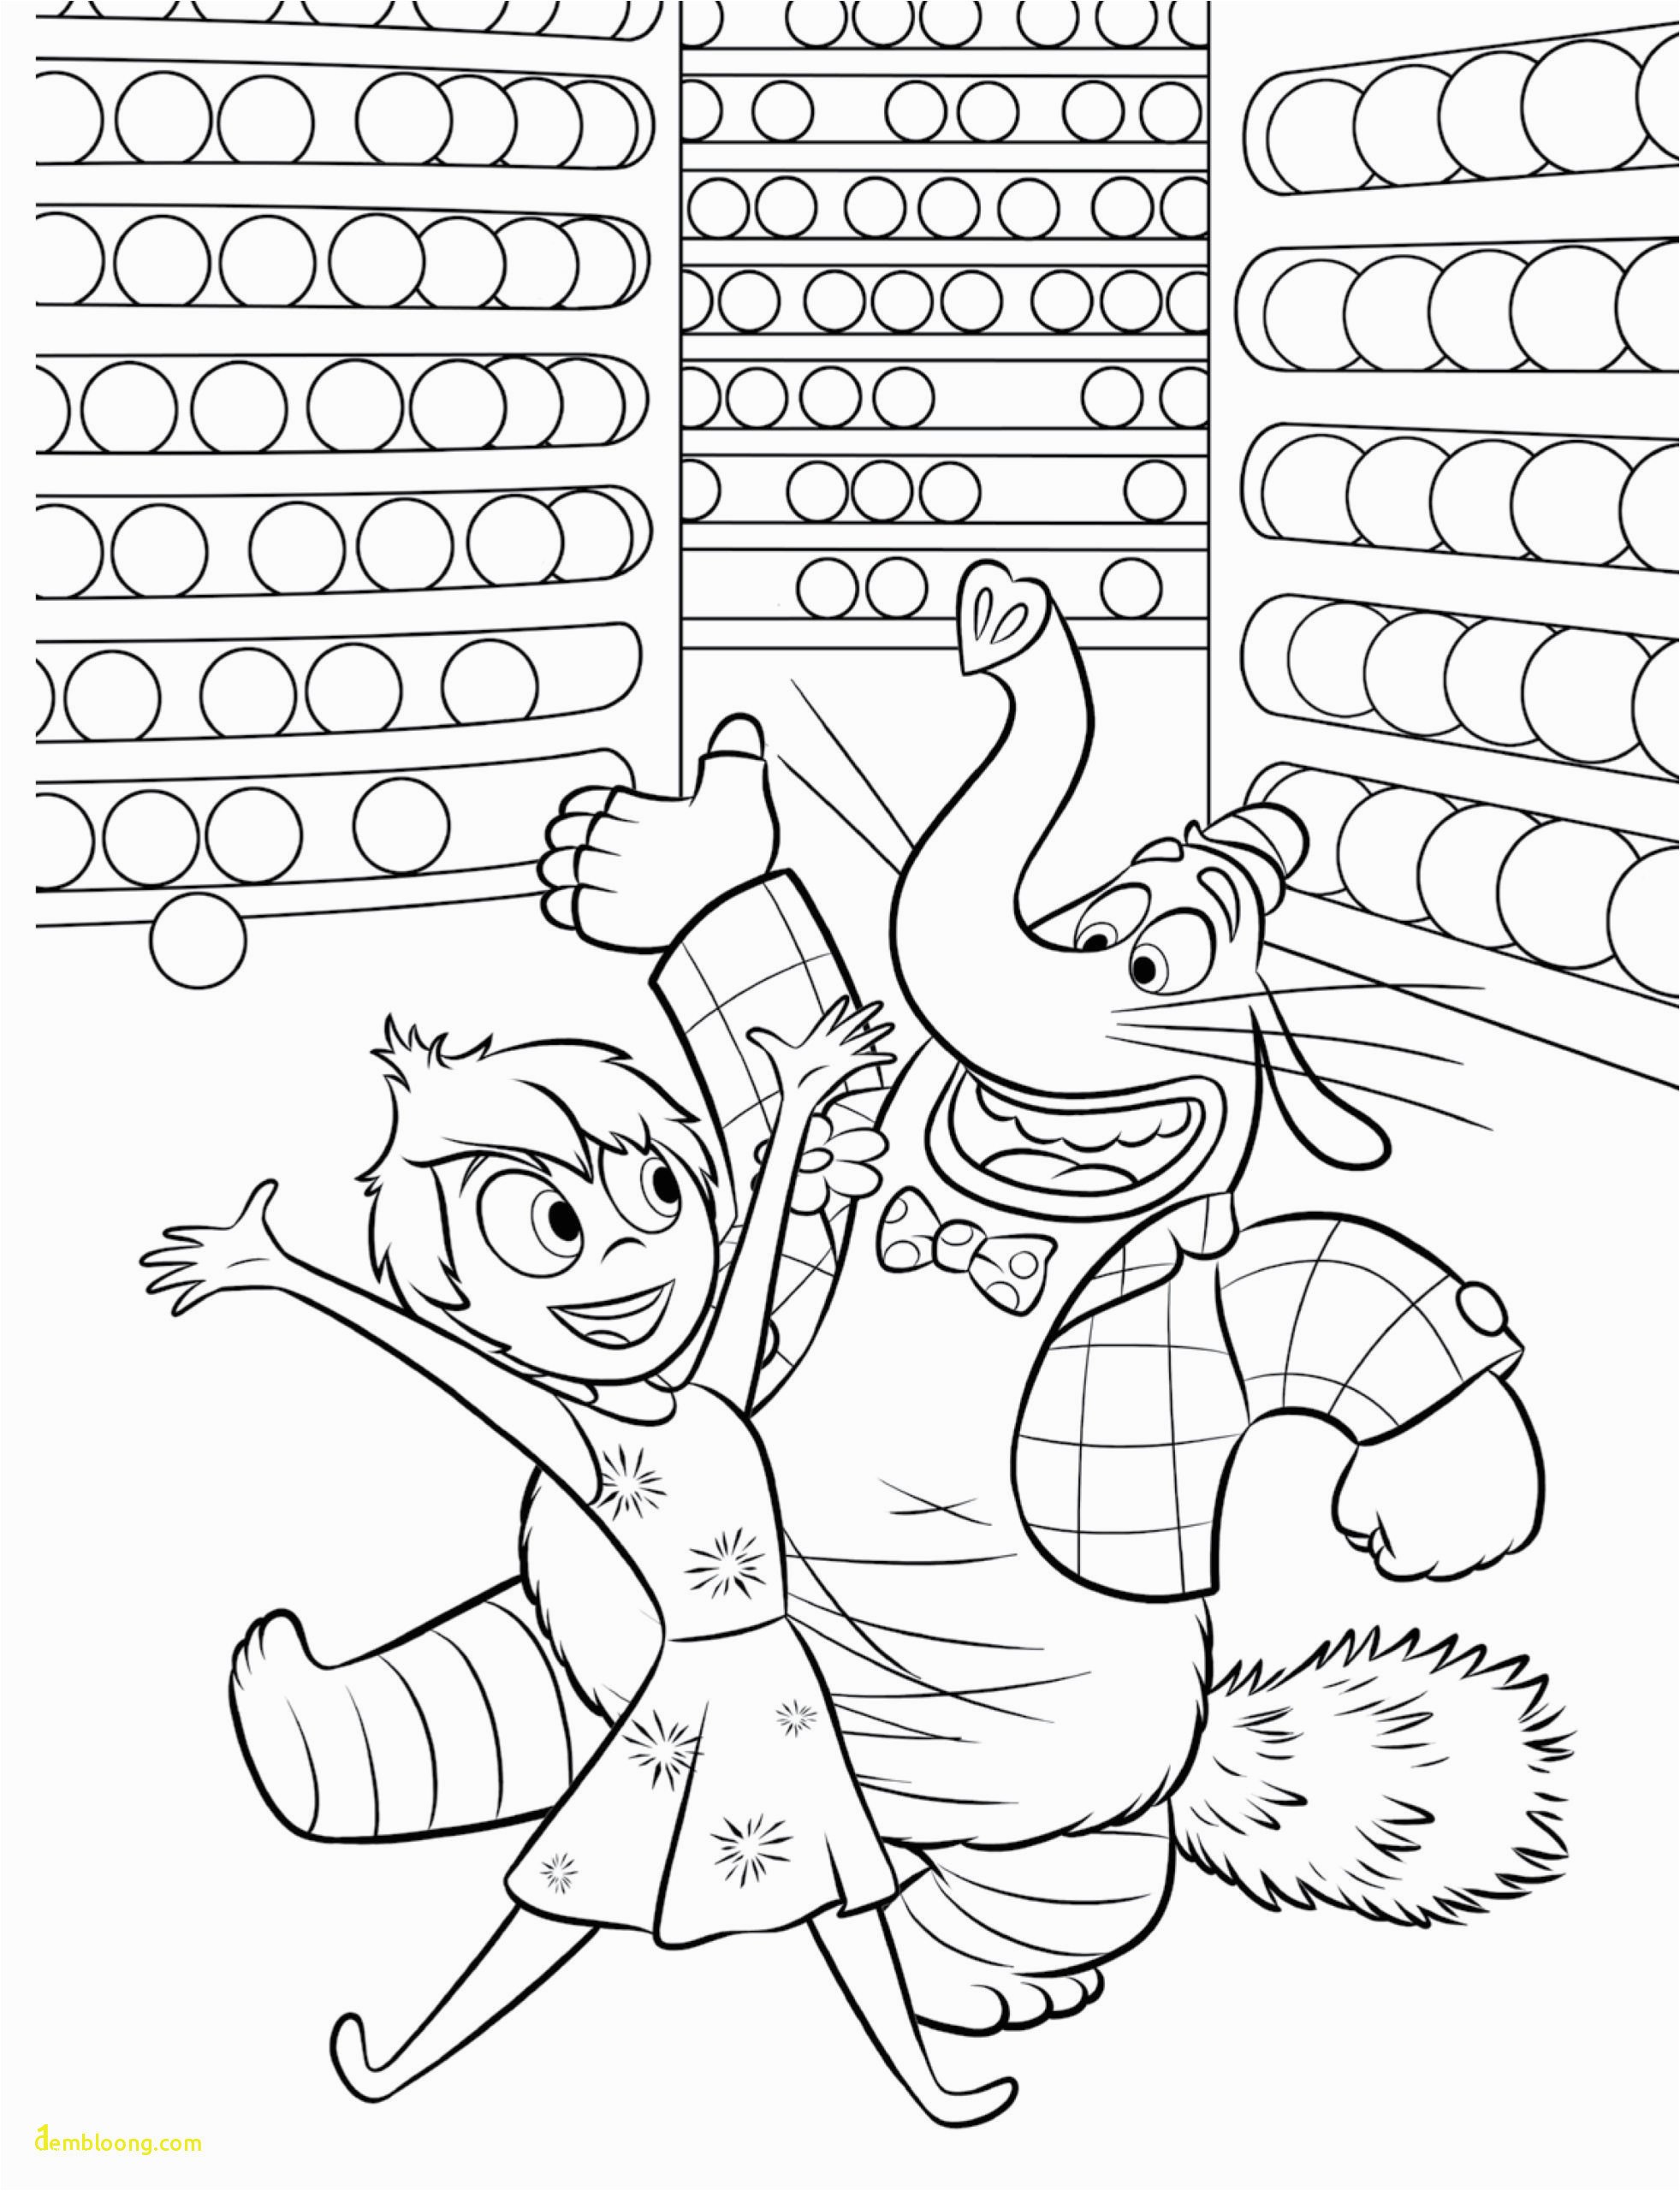 printable coloring sheets for preschoolers unique coloring pages free printable color by number for adults of printable coloring sheets for preschoolers